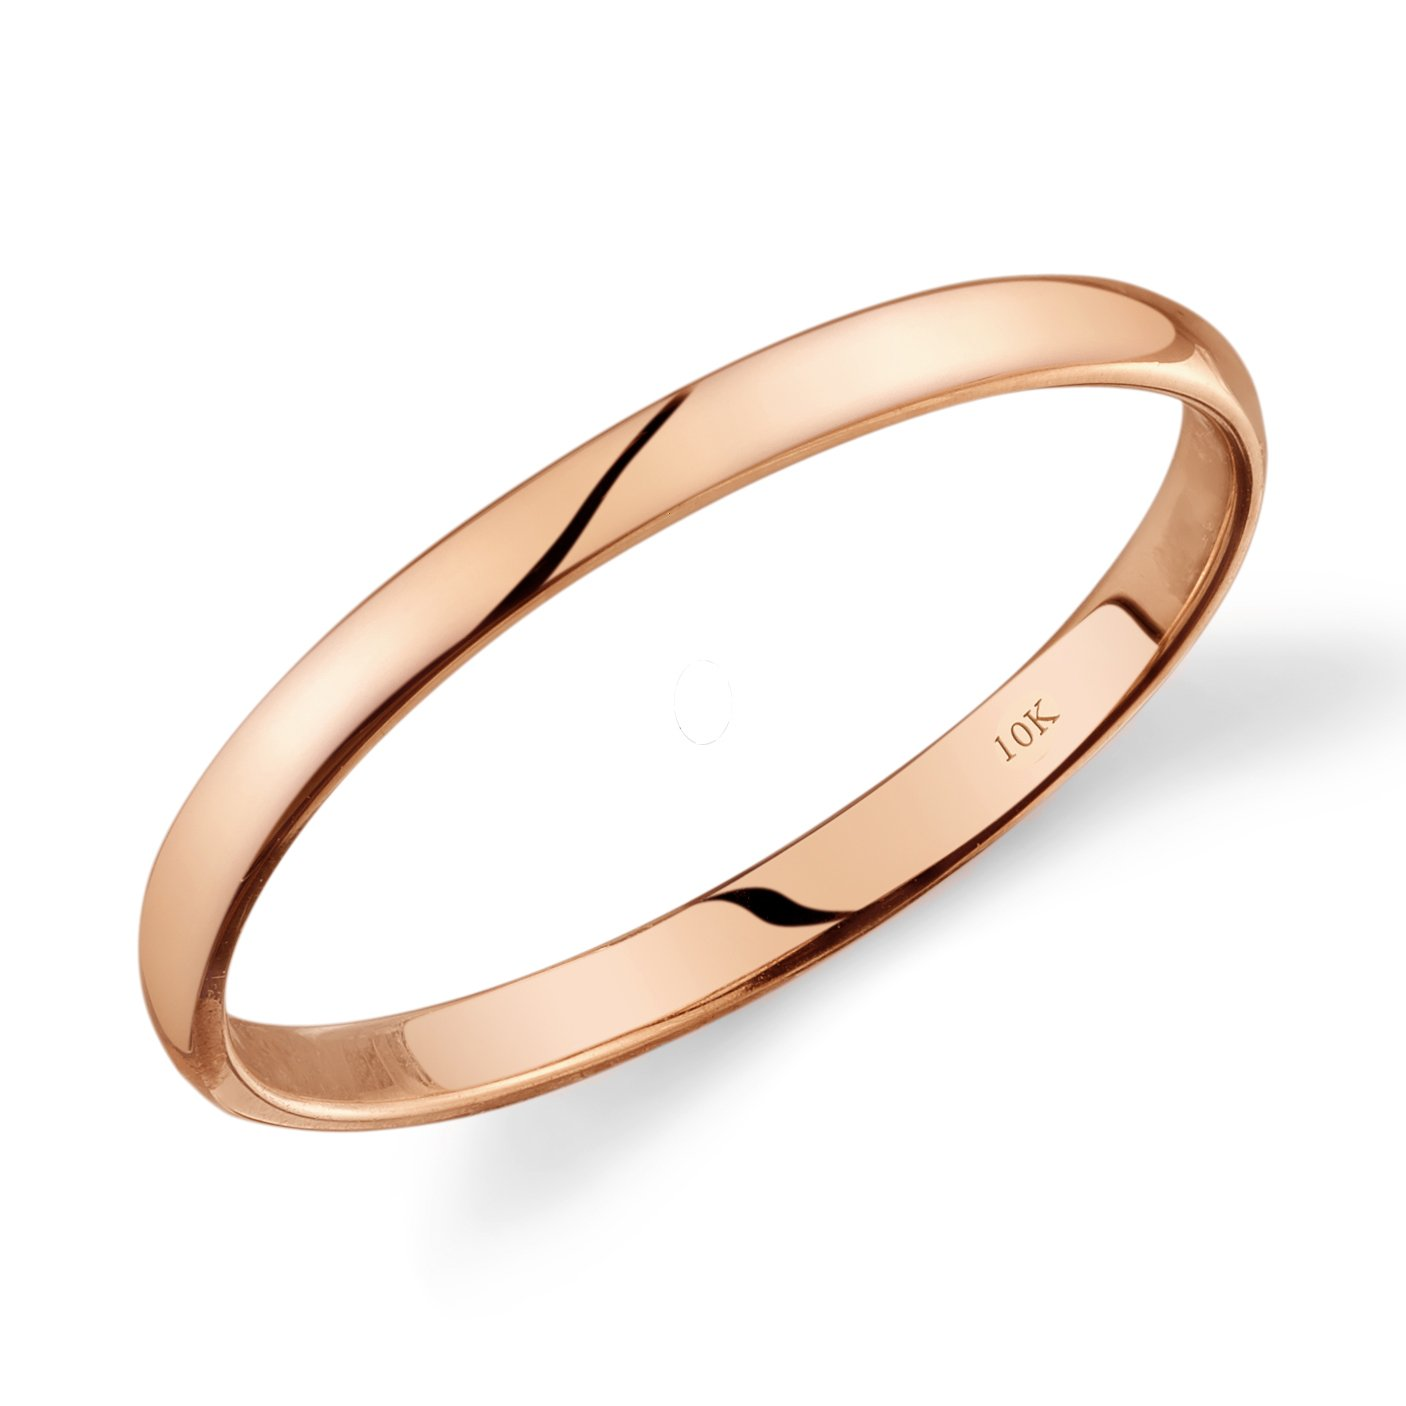 band gold vernring bands contour diamond of vern point shape products thin v choice rose wedding